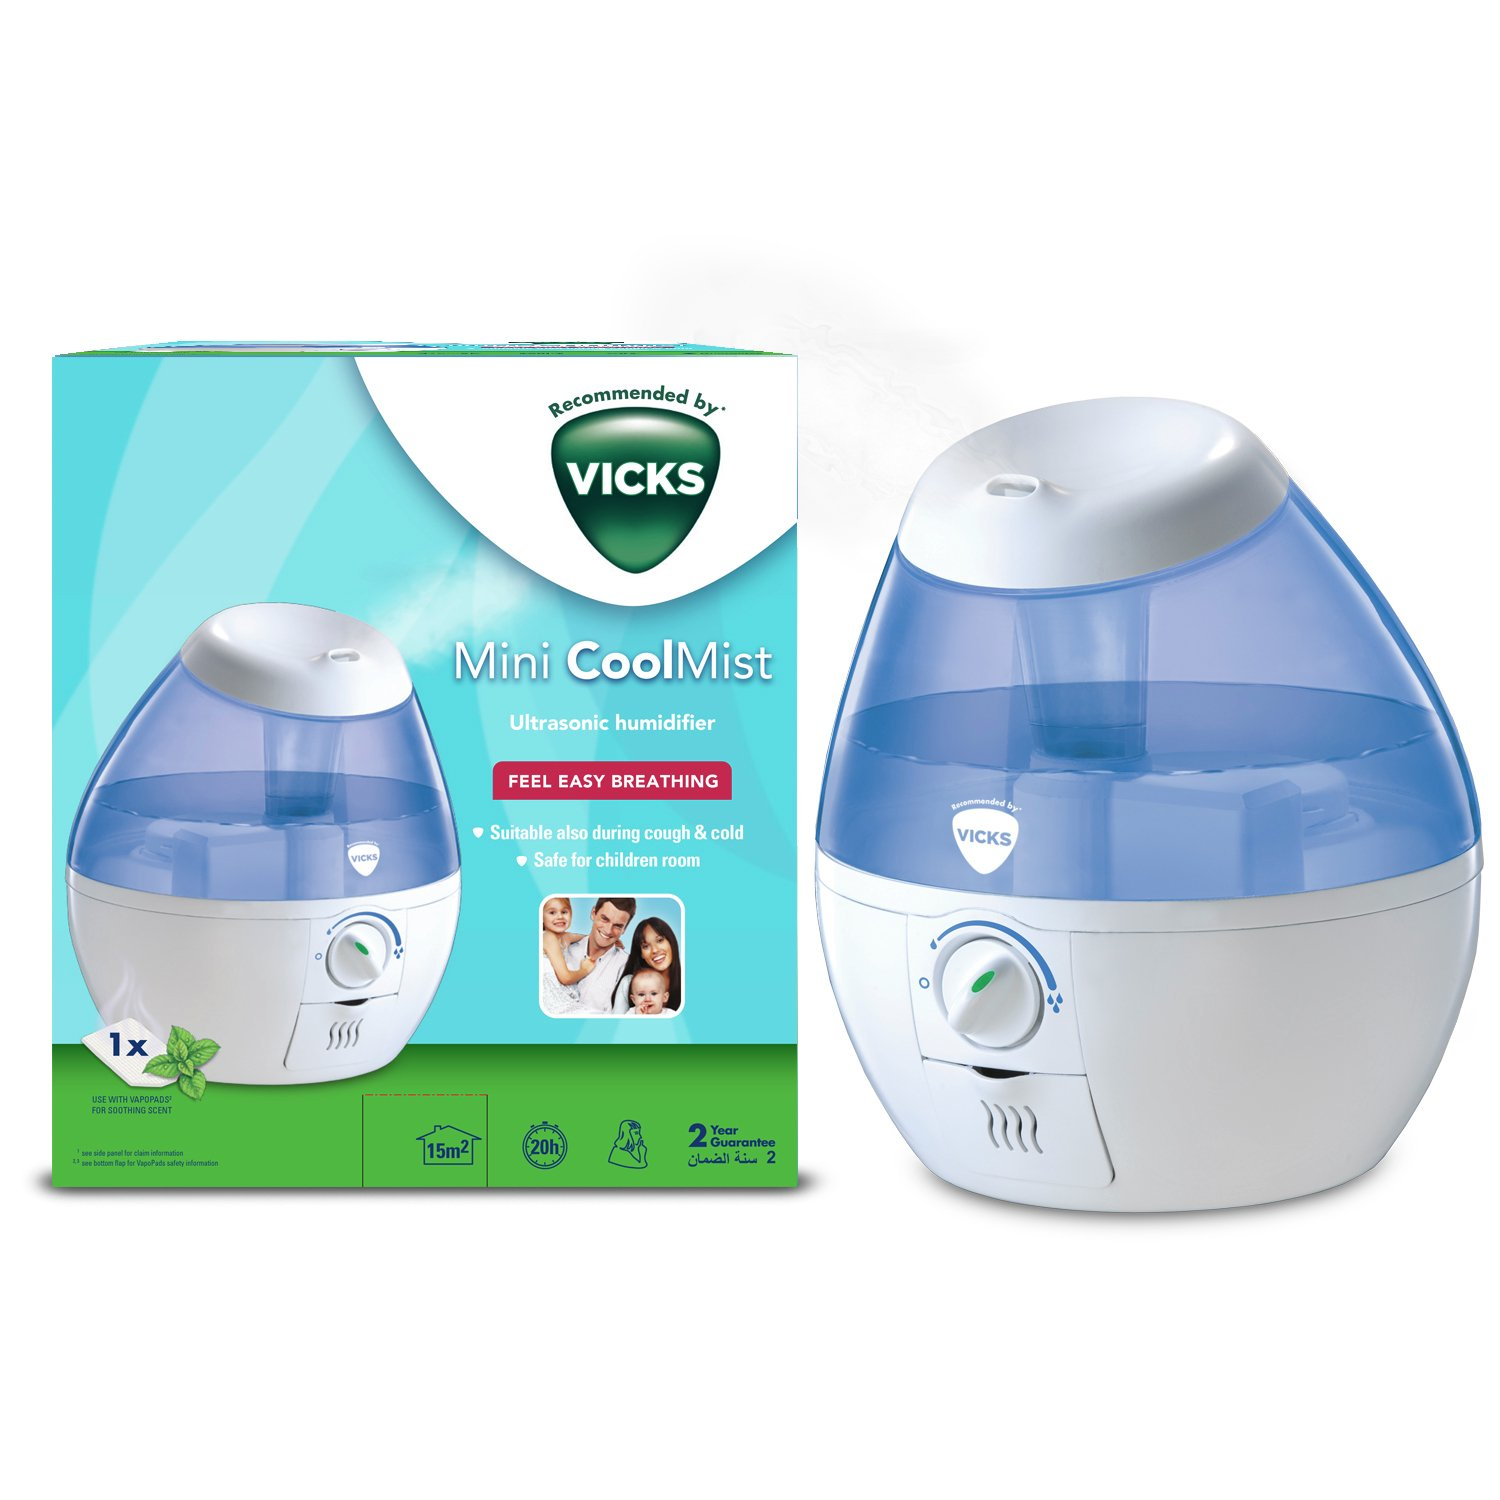 vicks humidifier cleaning instructions v750